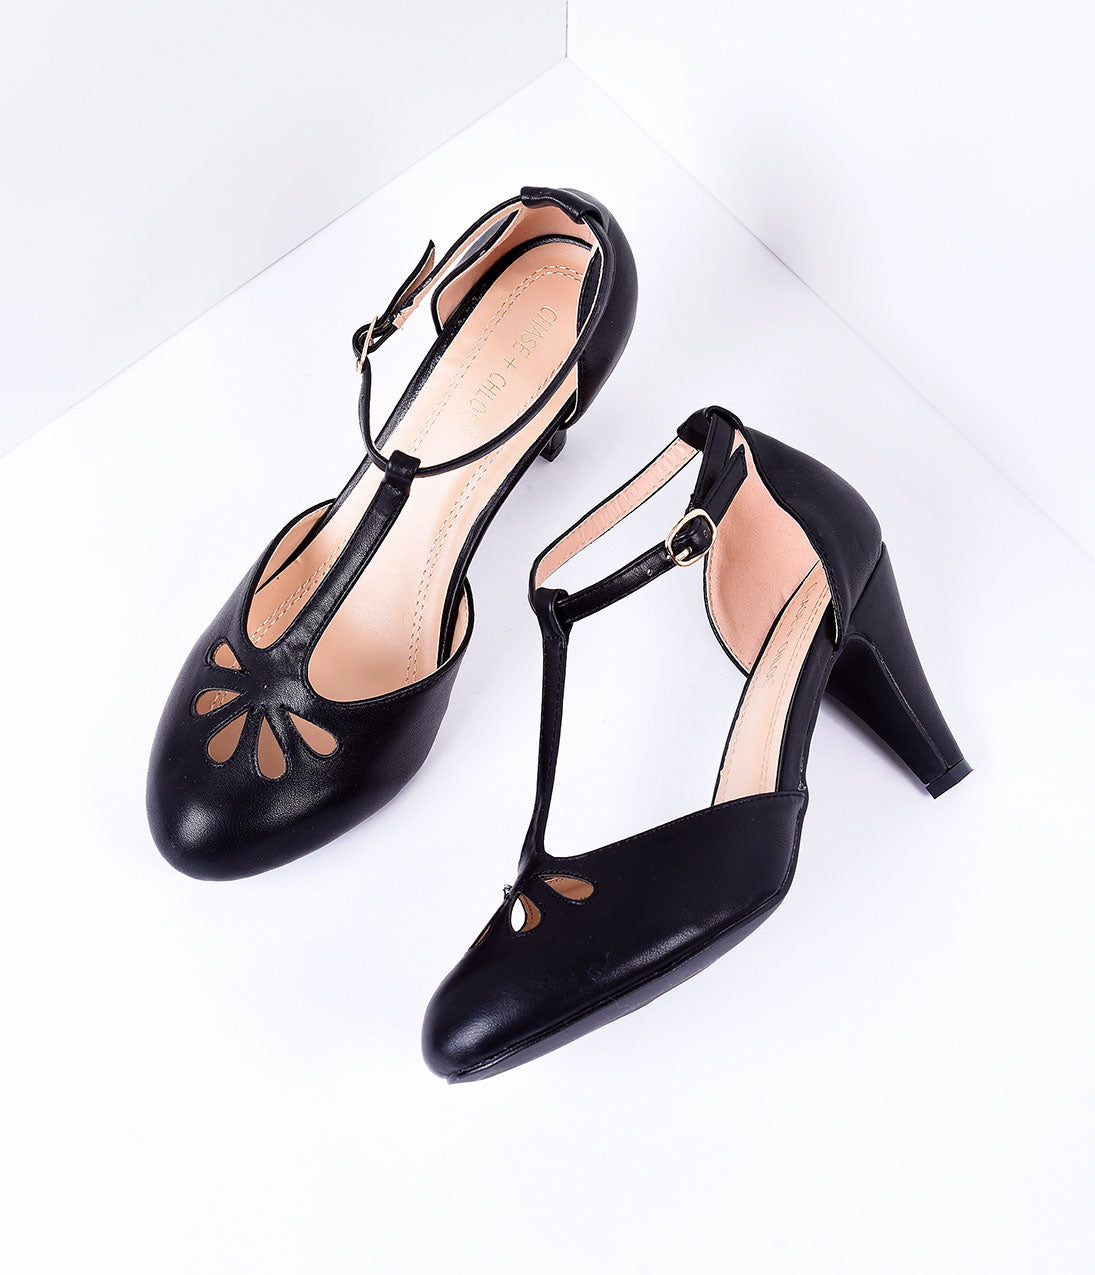 1920s Style Shoes Black Pleather Cutout Kimmy T-Strap Heels $44.00 AT vintagedancer.com